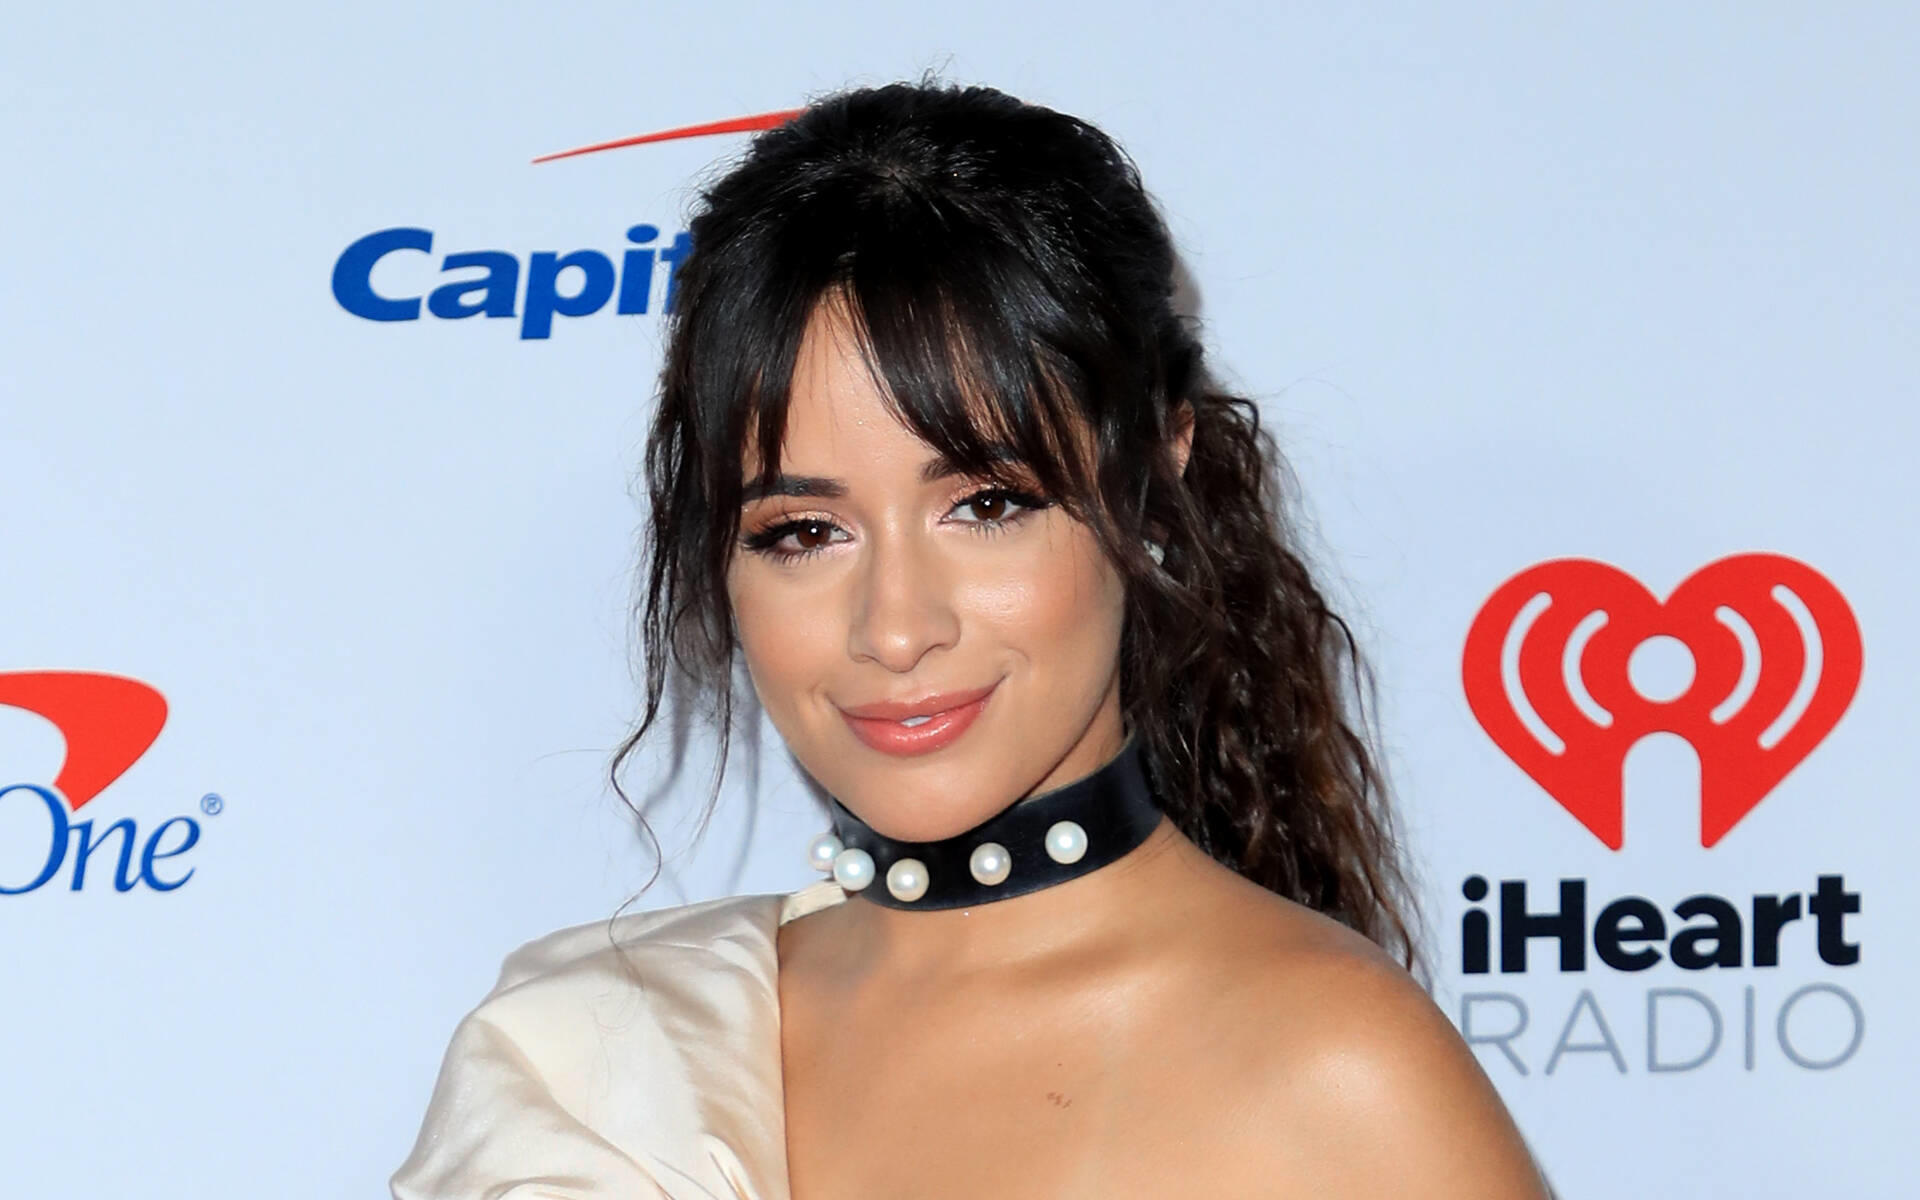 Camila Cabello: Hoppla, Stift geklaut in Williams und Kates Palast